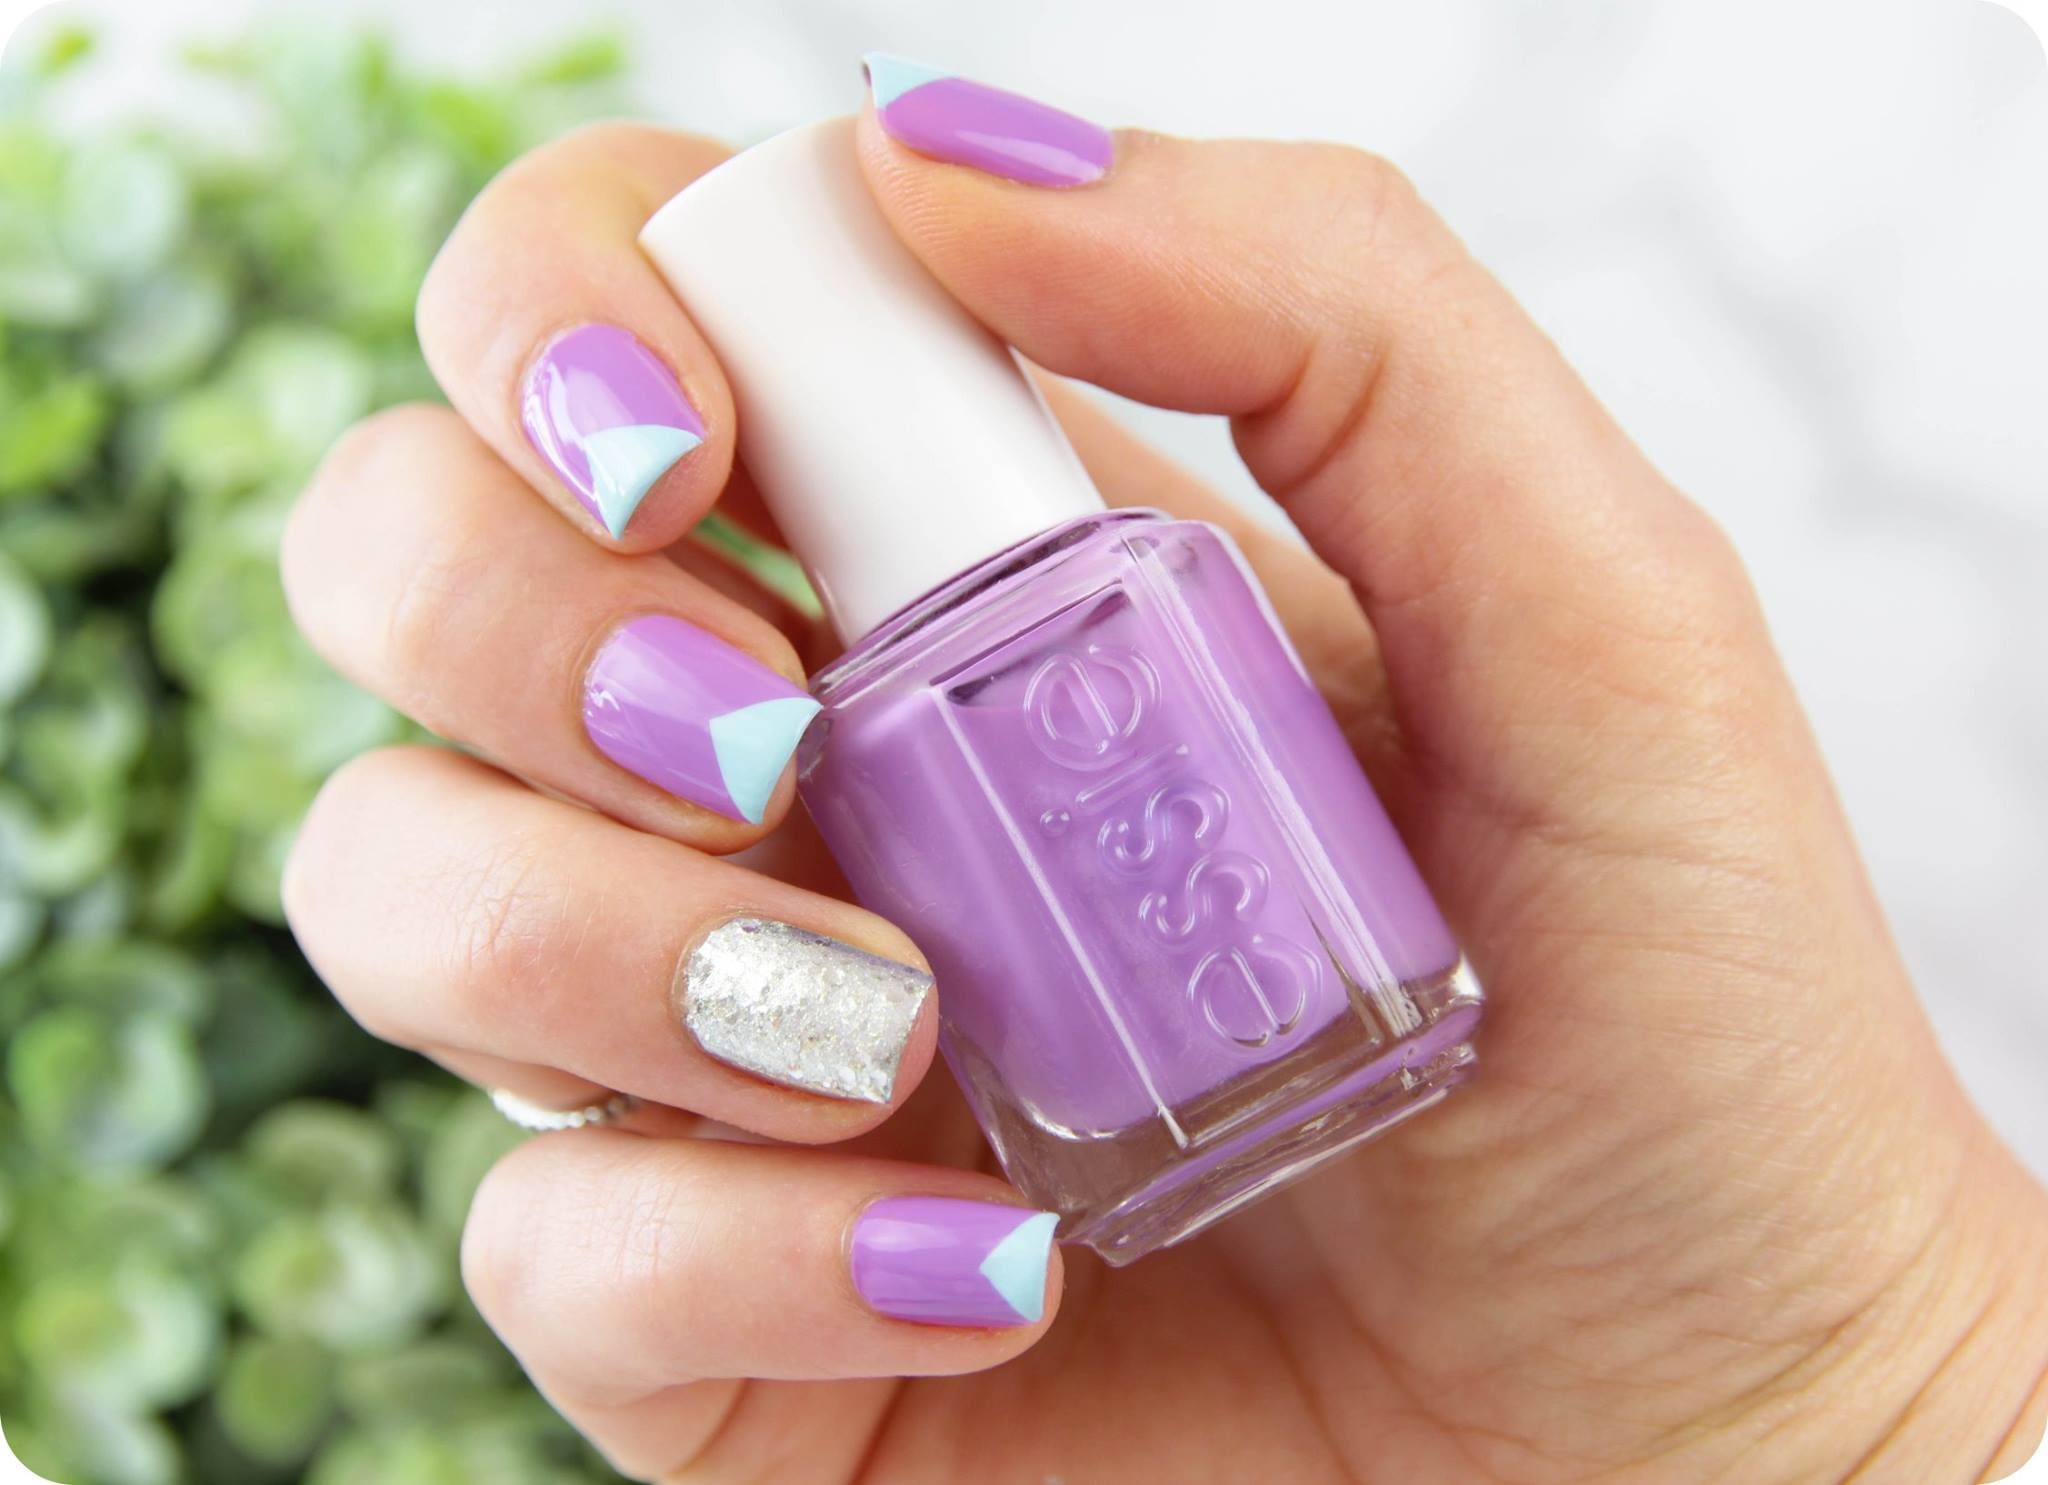 46 Super Easy Summer Nail Art Designs For The Love Of Spring ...